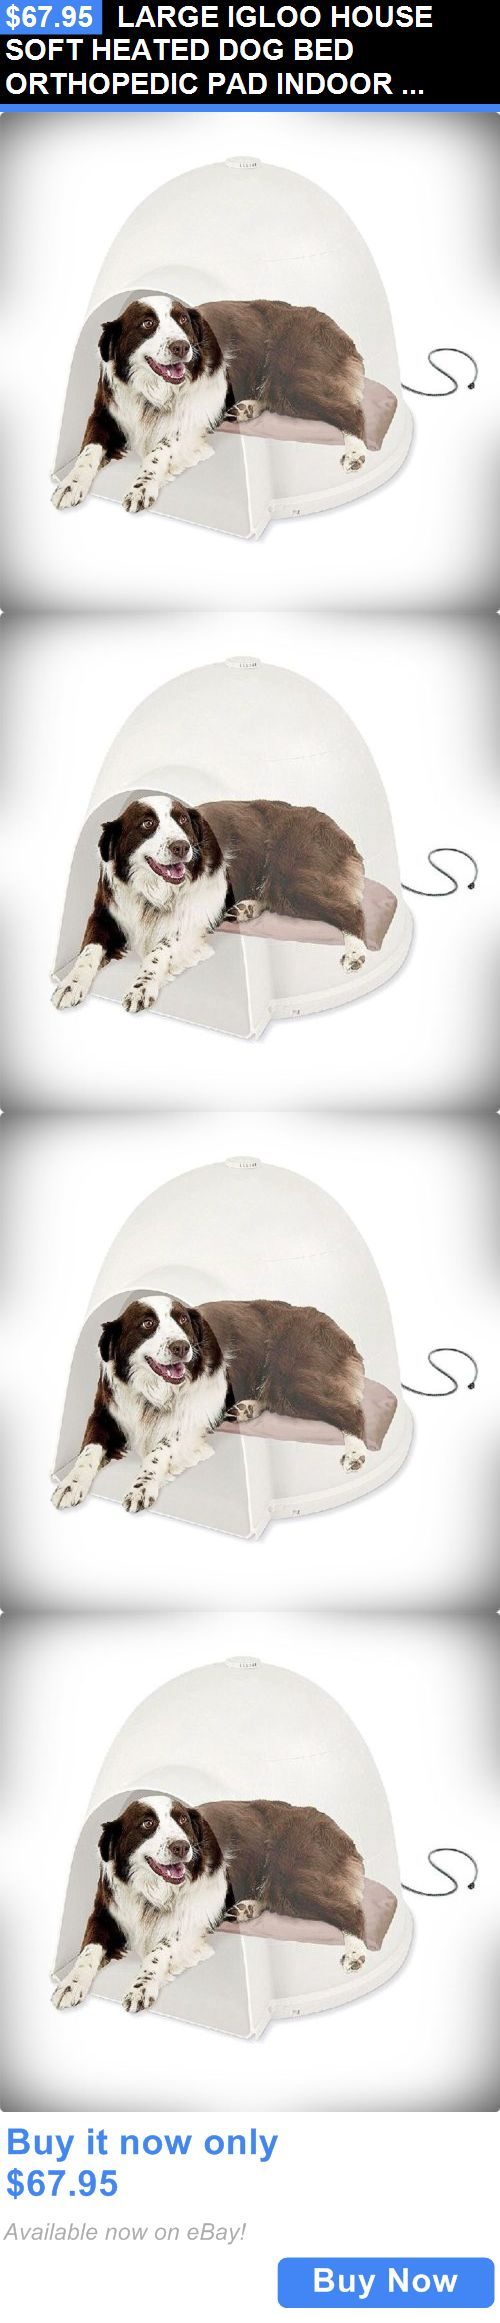 1000 ideas about heated dog house on pinterest dog for Soft indoor dog house large